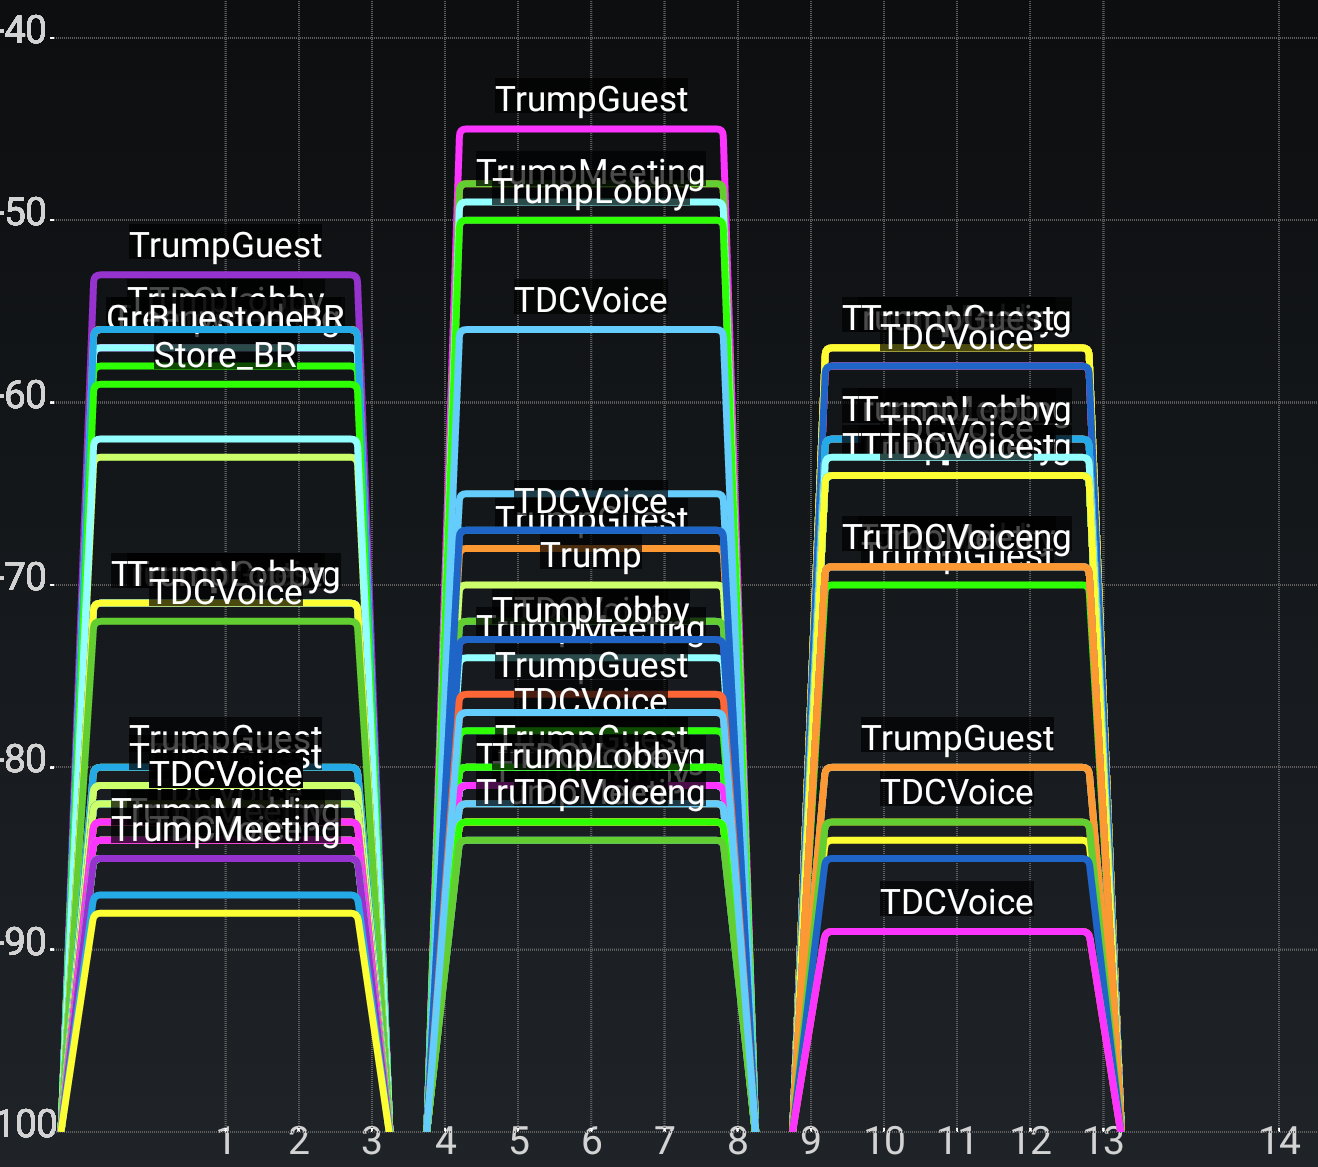 2.4 GHz Wifi in Trump hotel